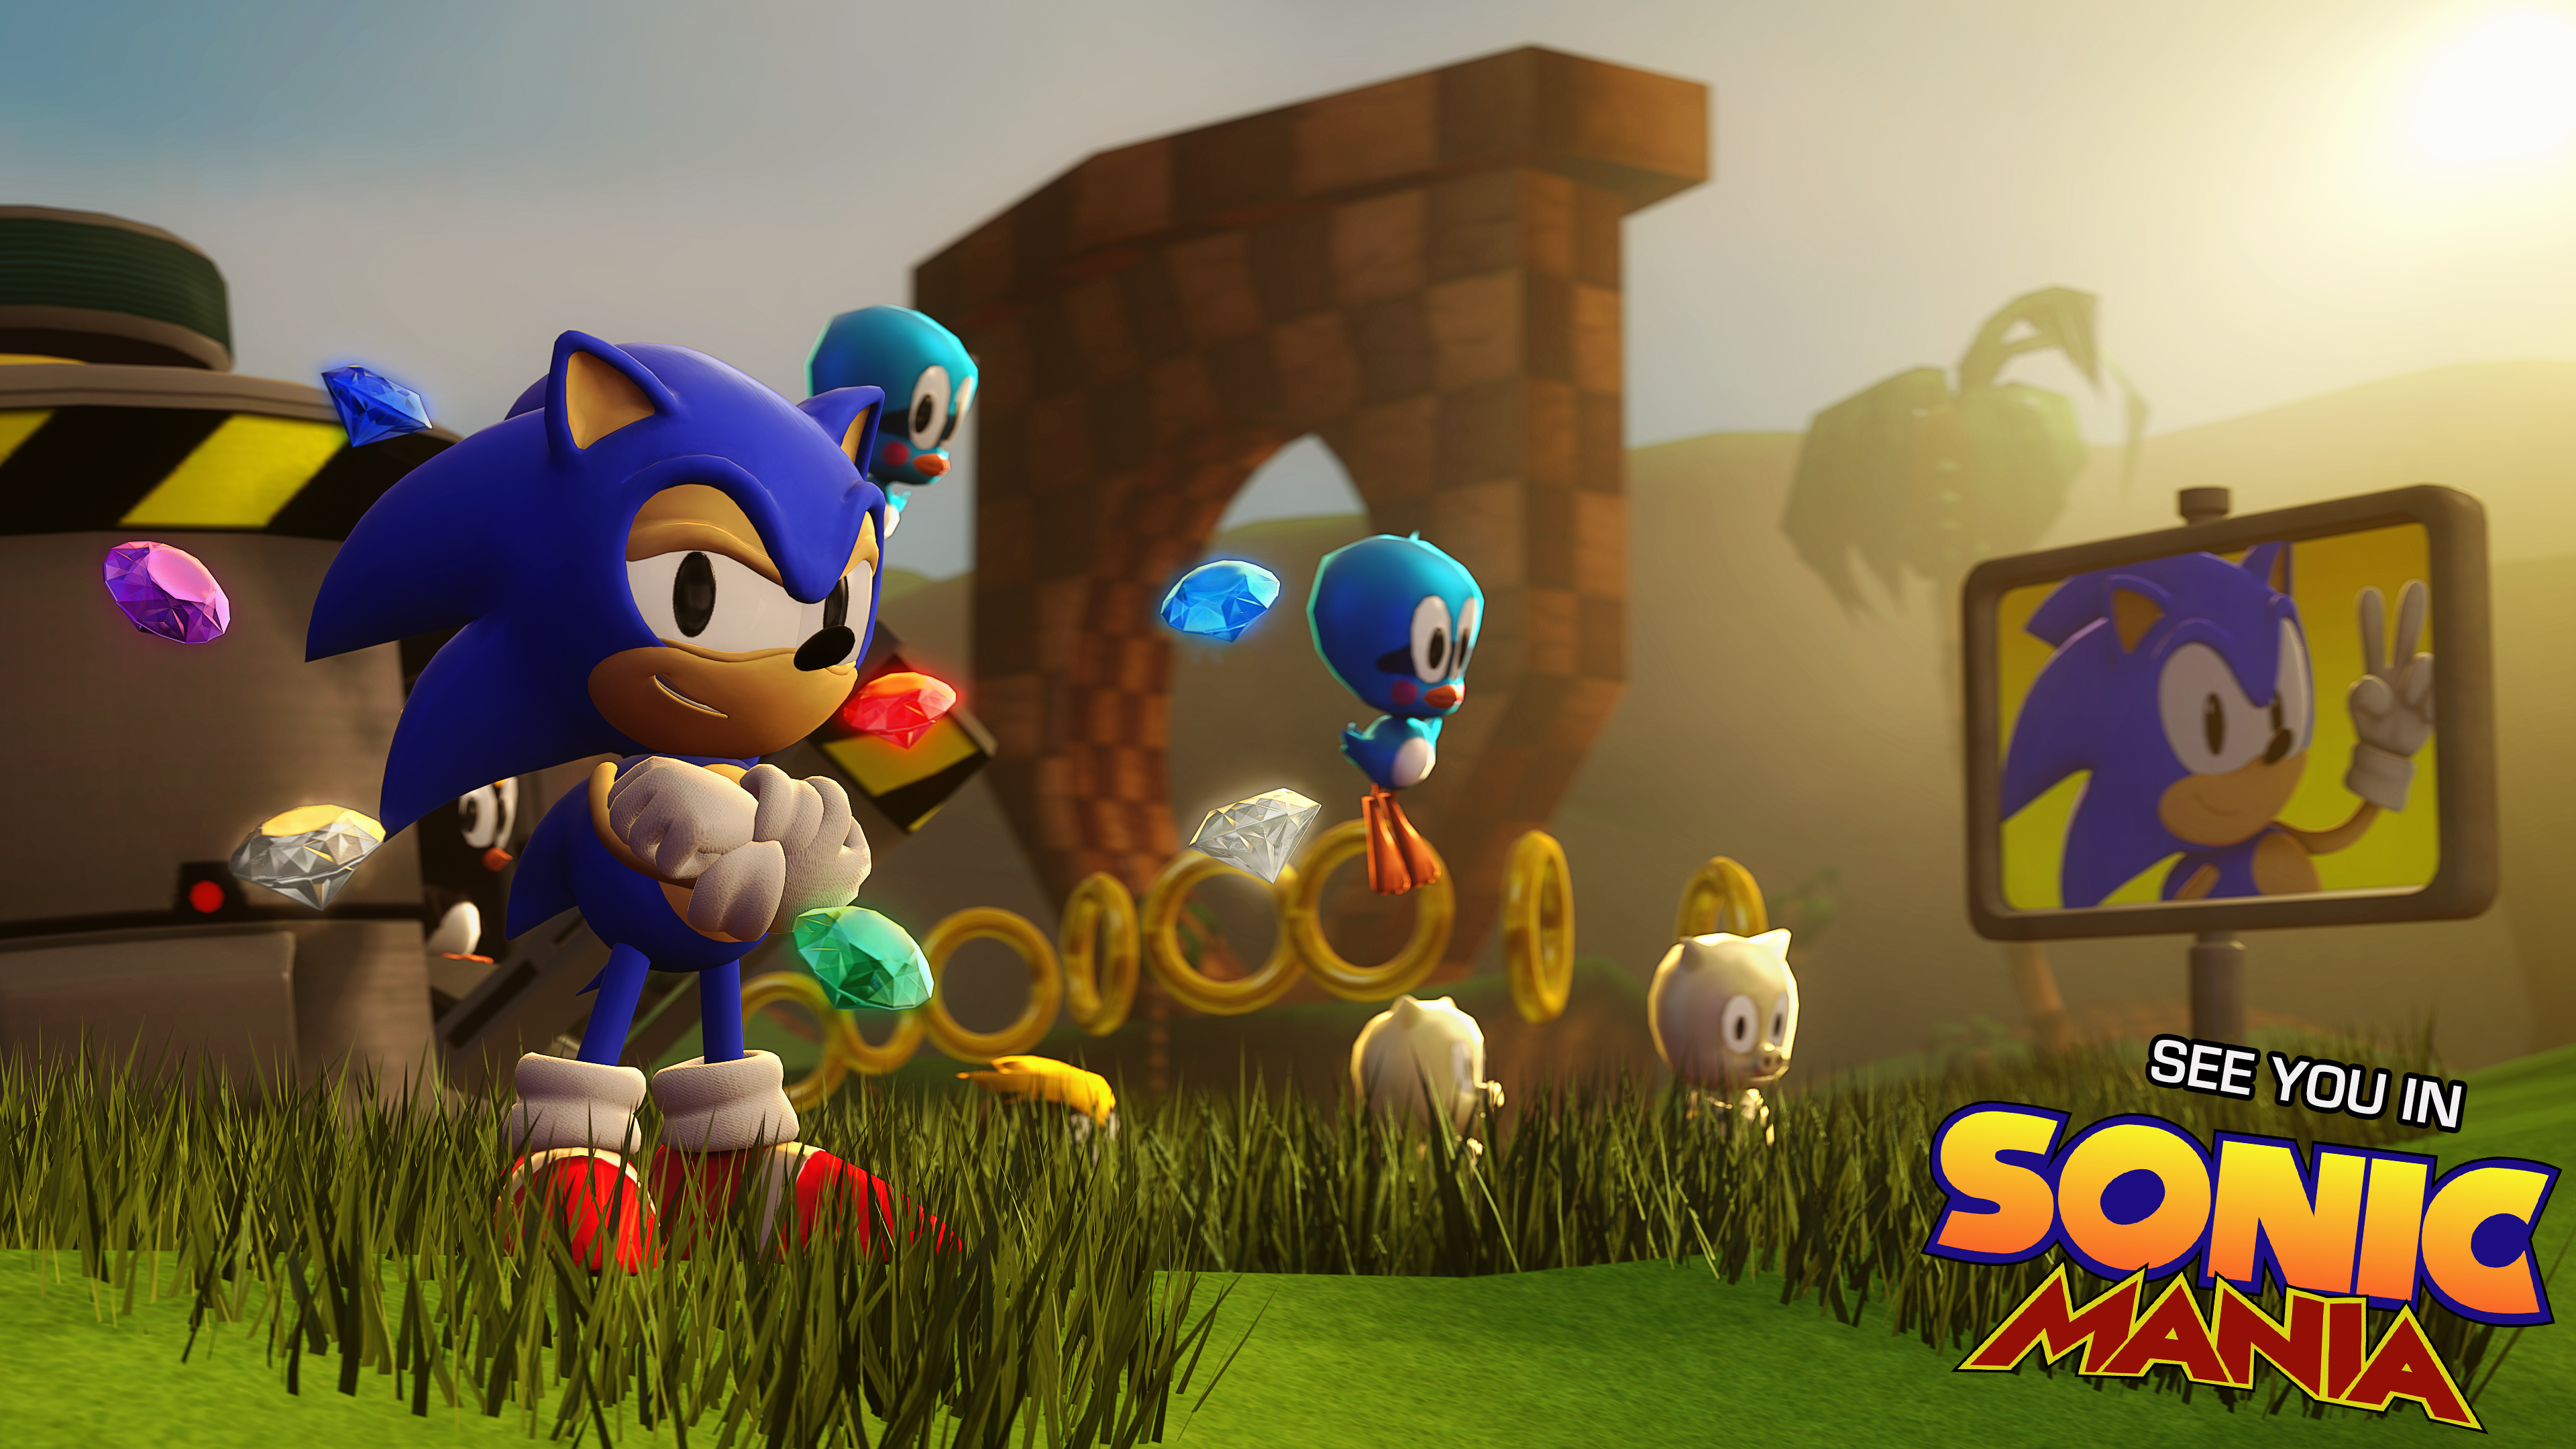 248 Sonic the Hedgehog HD Wallpapers  Background Images